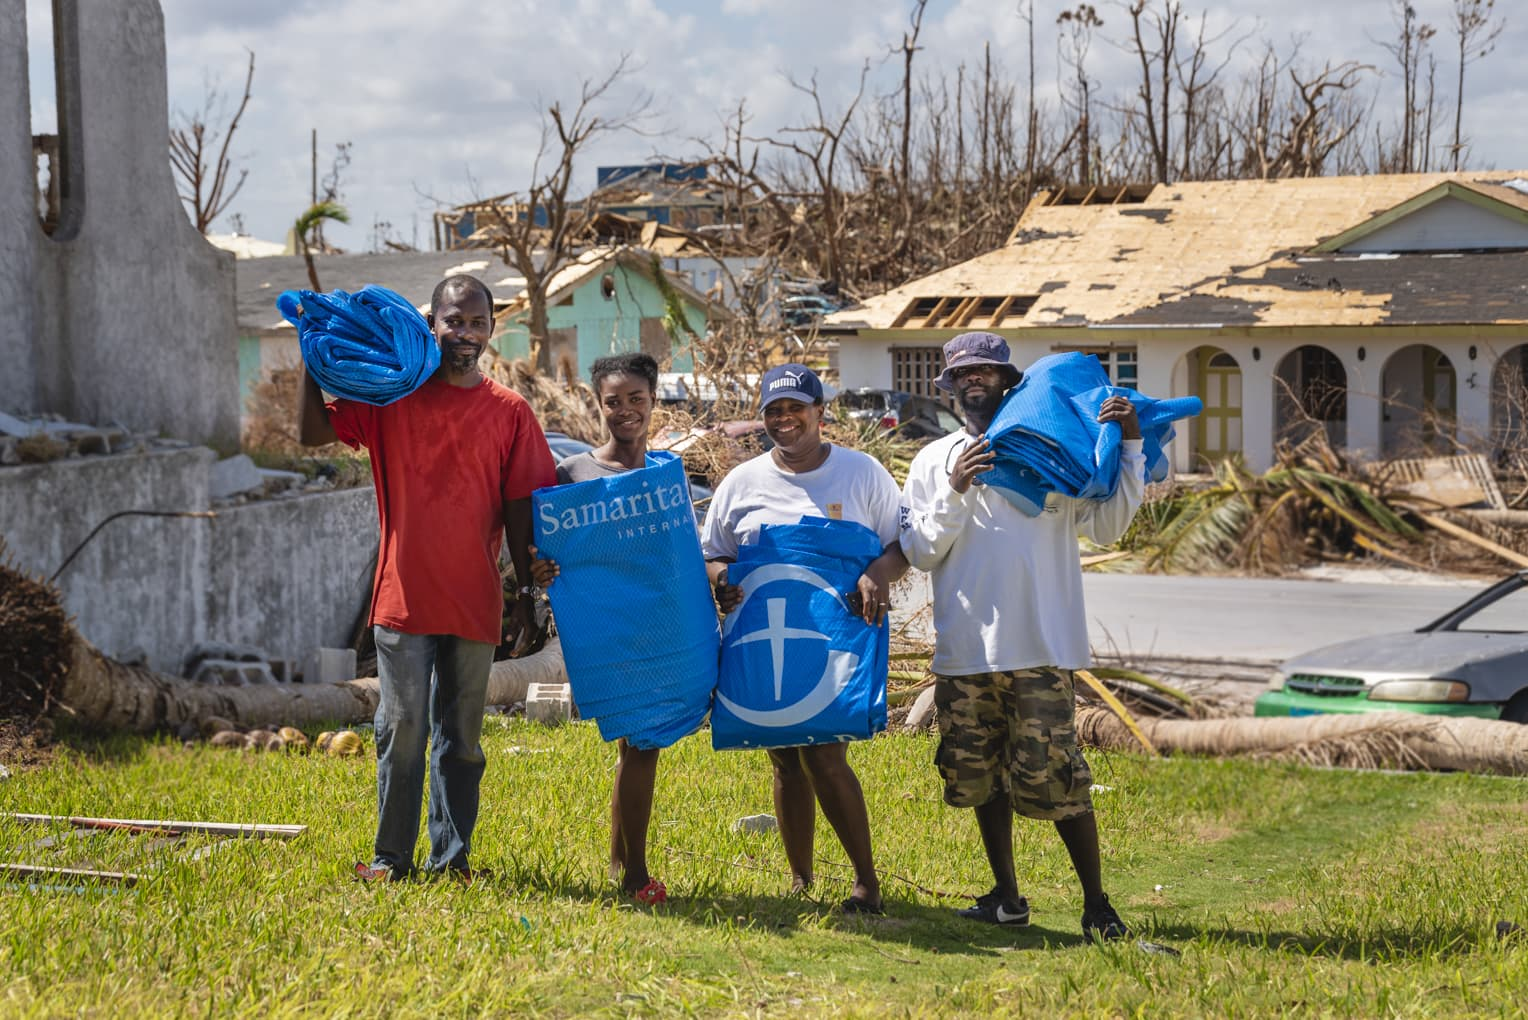 Samaritan's Purse airlifted 360 tons of emergency relief items after Hurricane Dorian devastated the Bahamas, taking lives and destroying thousands of homes.